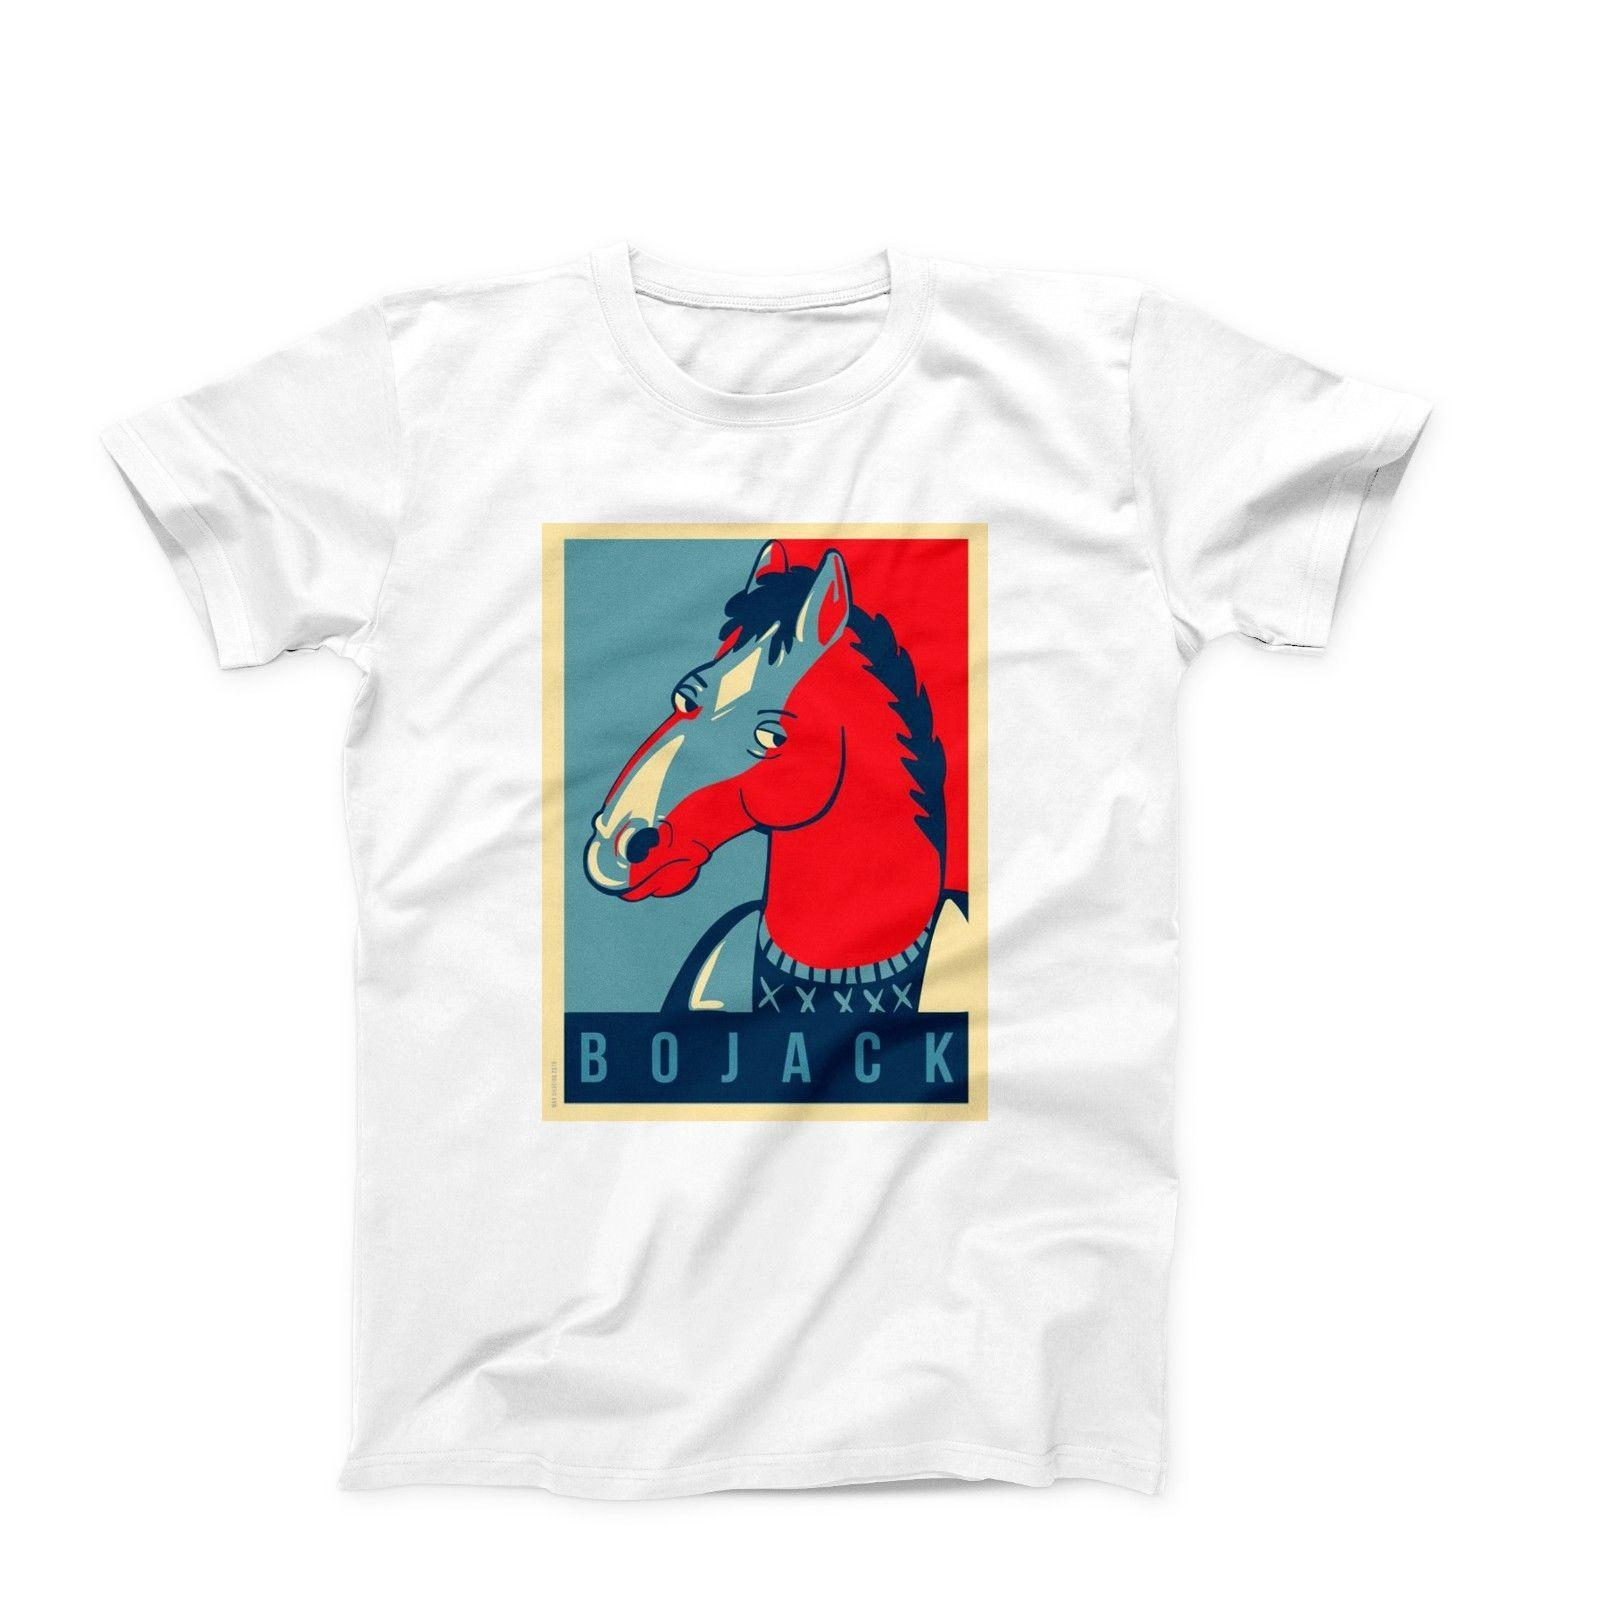 4b1f96c4a5 Bojack Horseman Anime TV Show Funny Novelty T Shirt Tee Birthday Gift  Comical T Shirts T Shirt With From Shirtsthatrock, $11.01| DHgate.Com